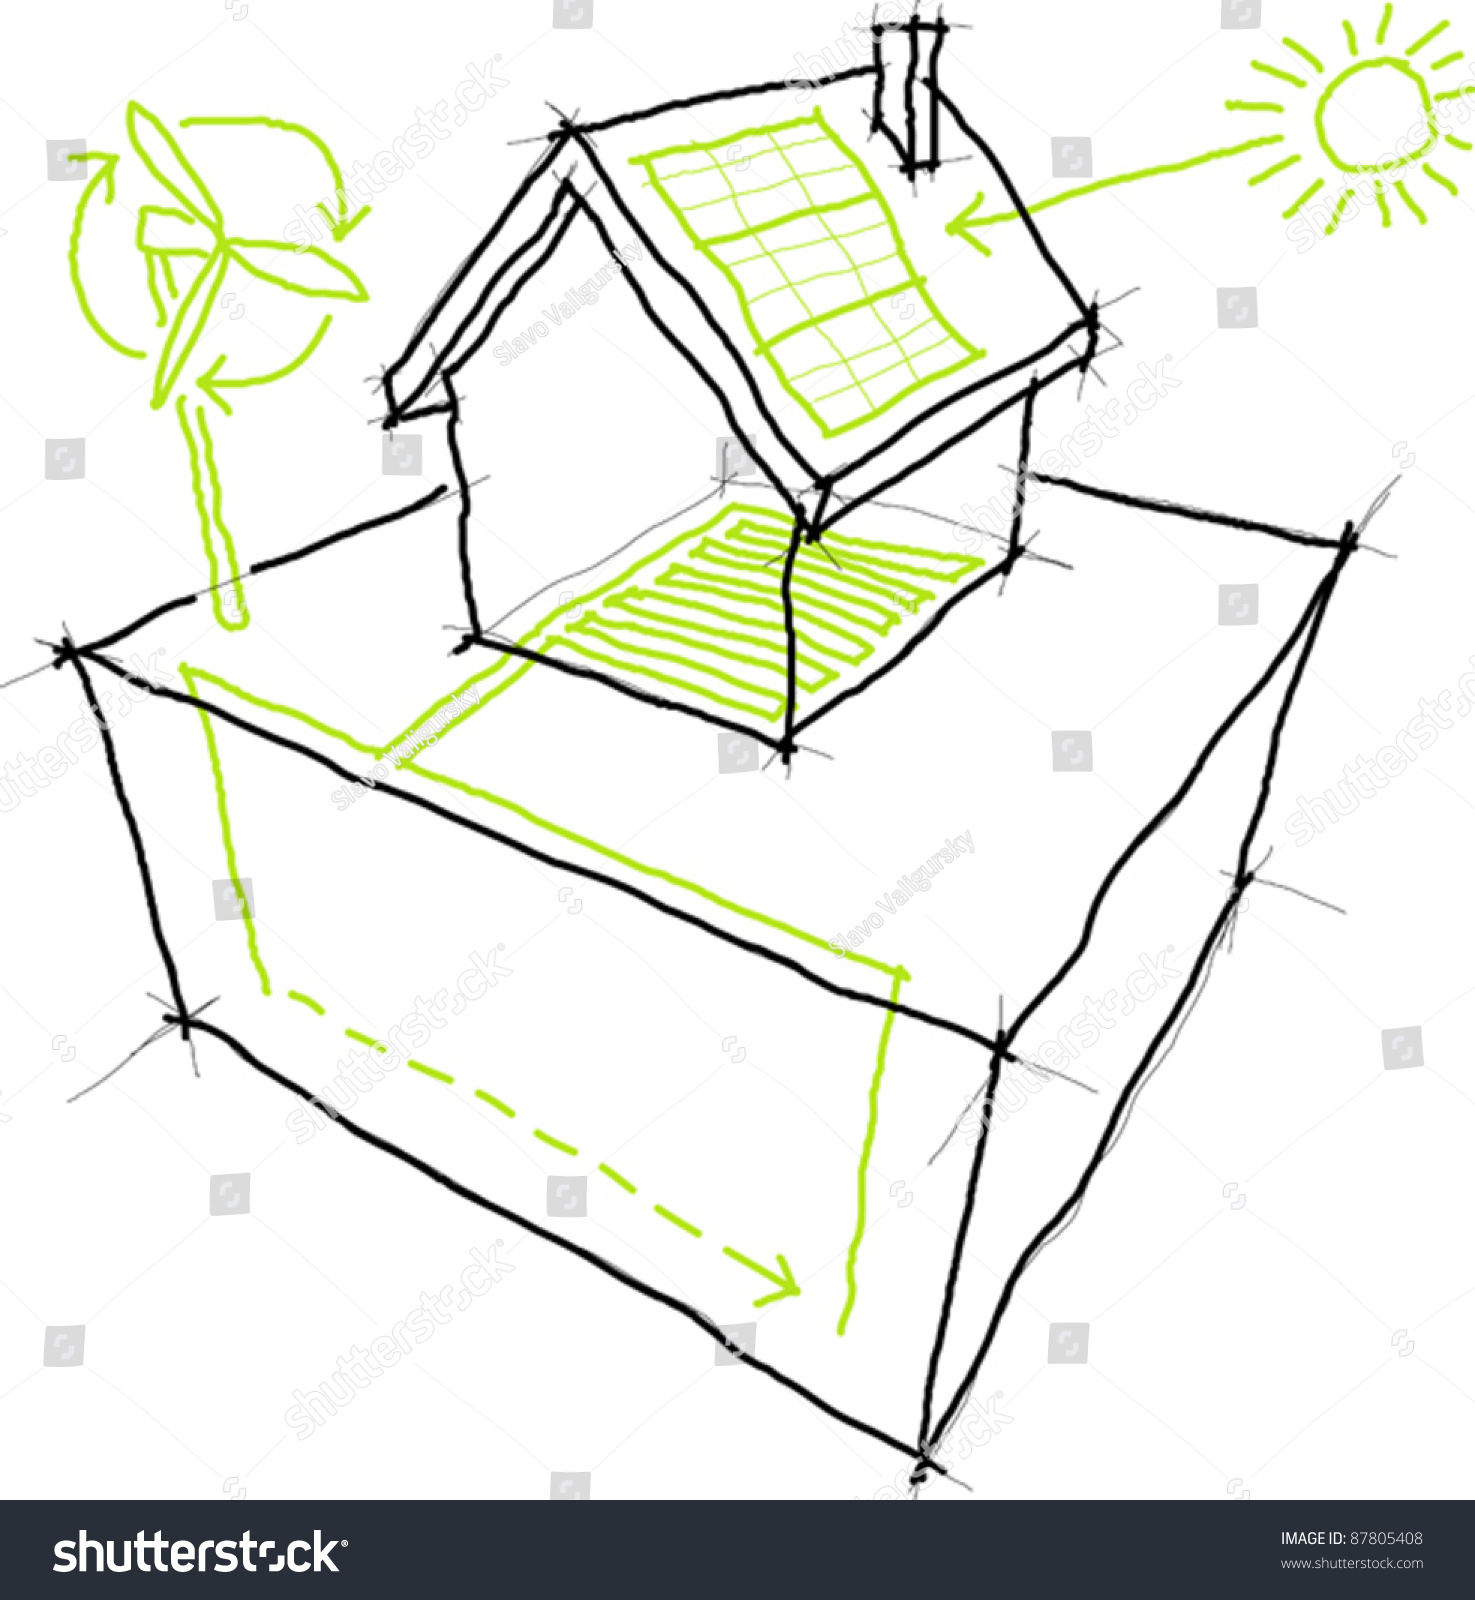 Solar Collector Energy Diagram Manual Guide Wiring Vacuumevacuatedtubediagram Sketches Sources Renewable Wind Turbine Stock Vector 87805408 Shutterstock Heating System Spain